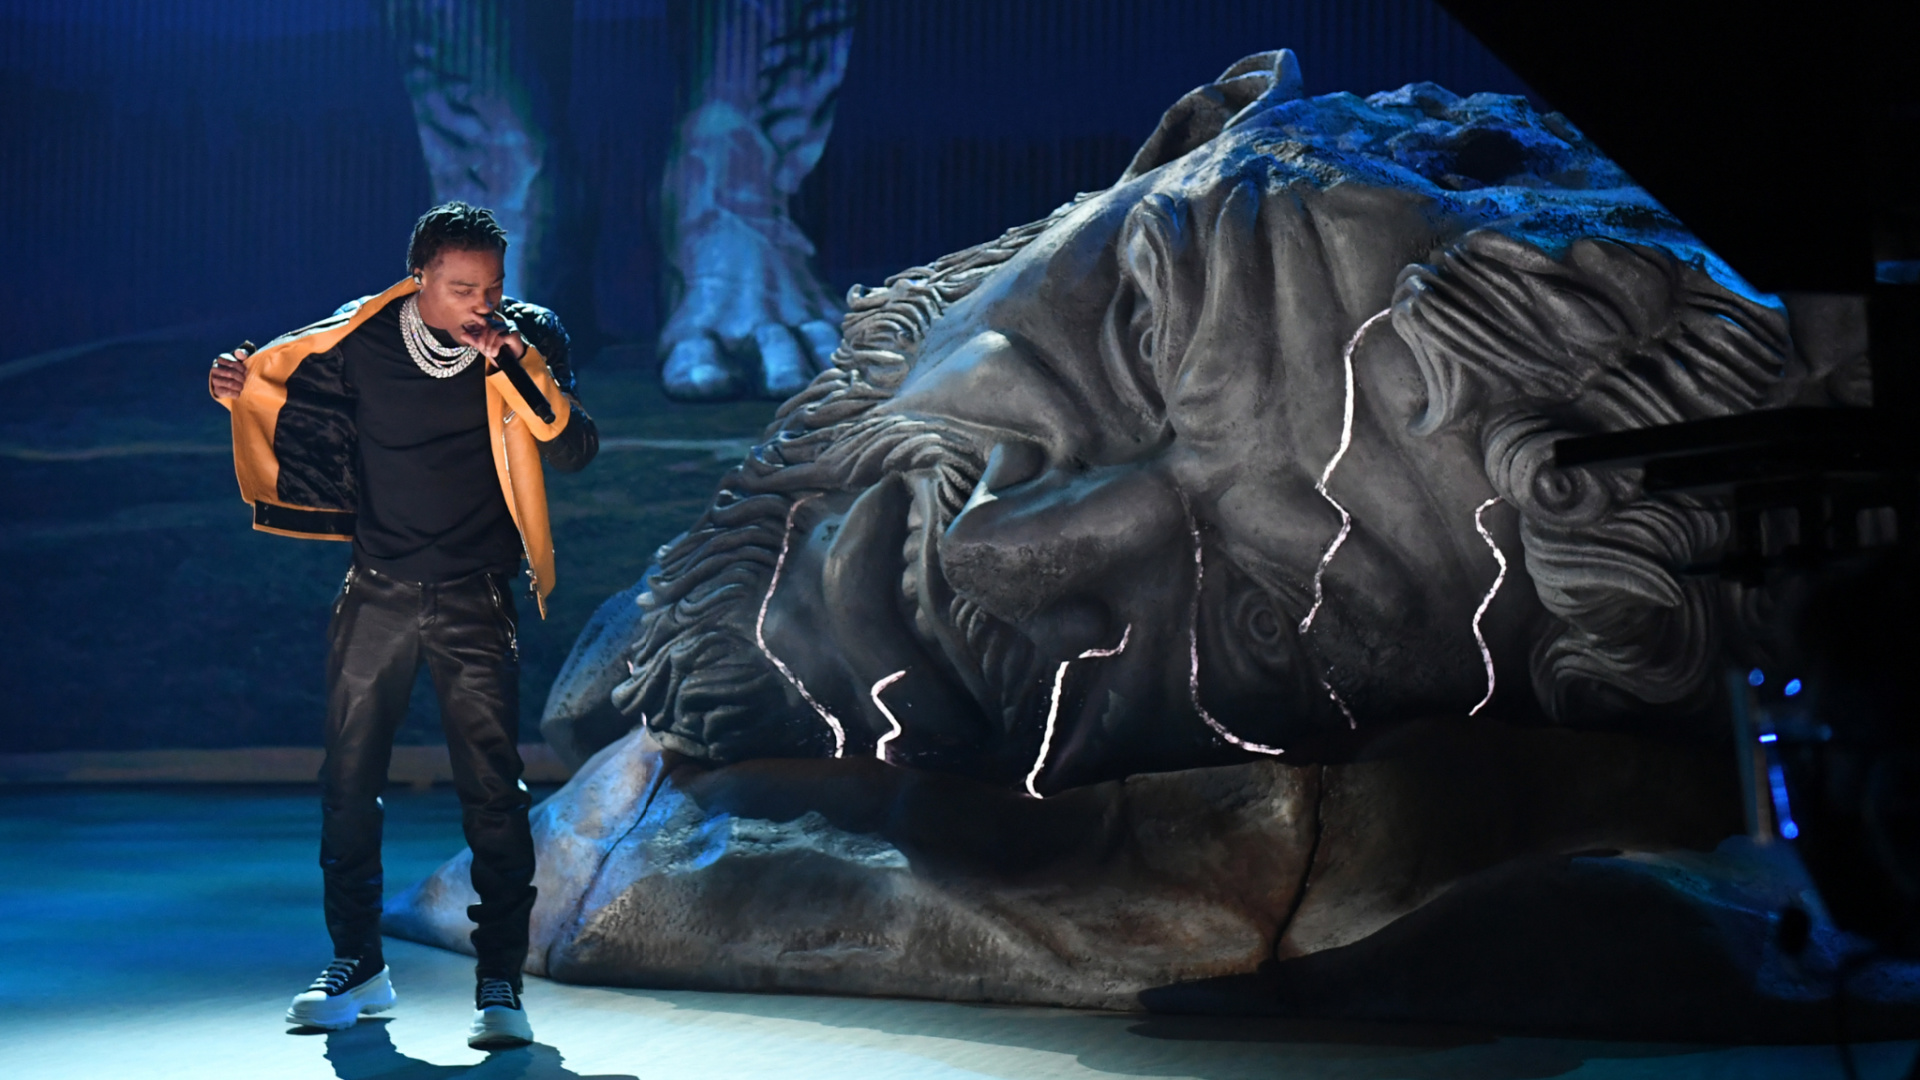 """Watch Roddy Ricch's 2021 Grammys Performance of """"The Box"""" and """"Heartless"""""""